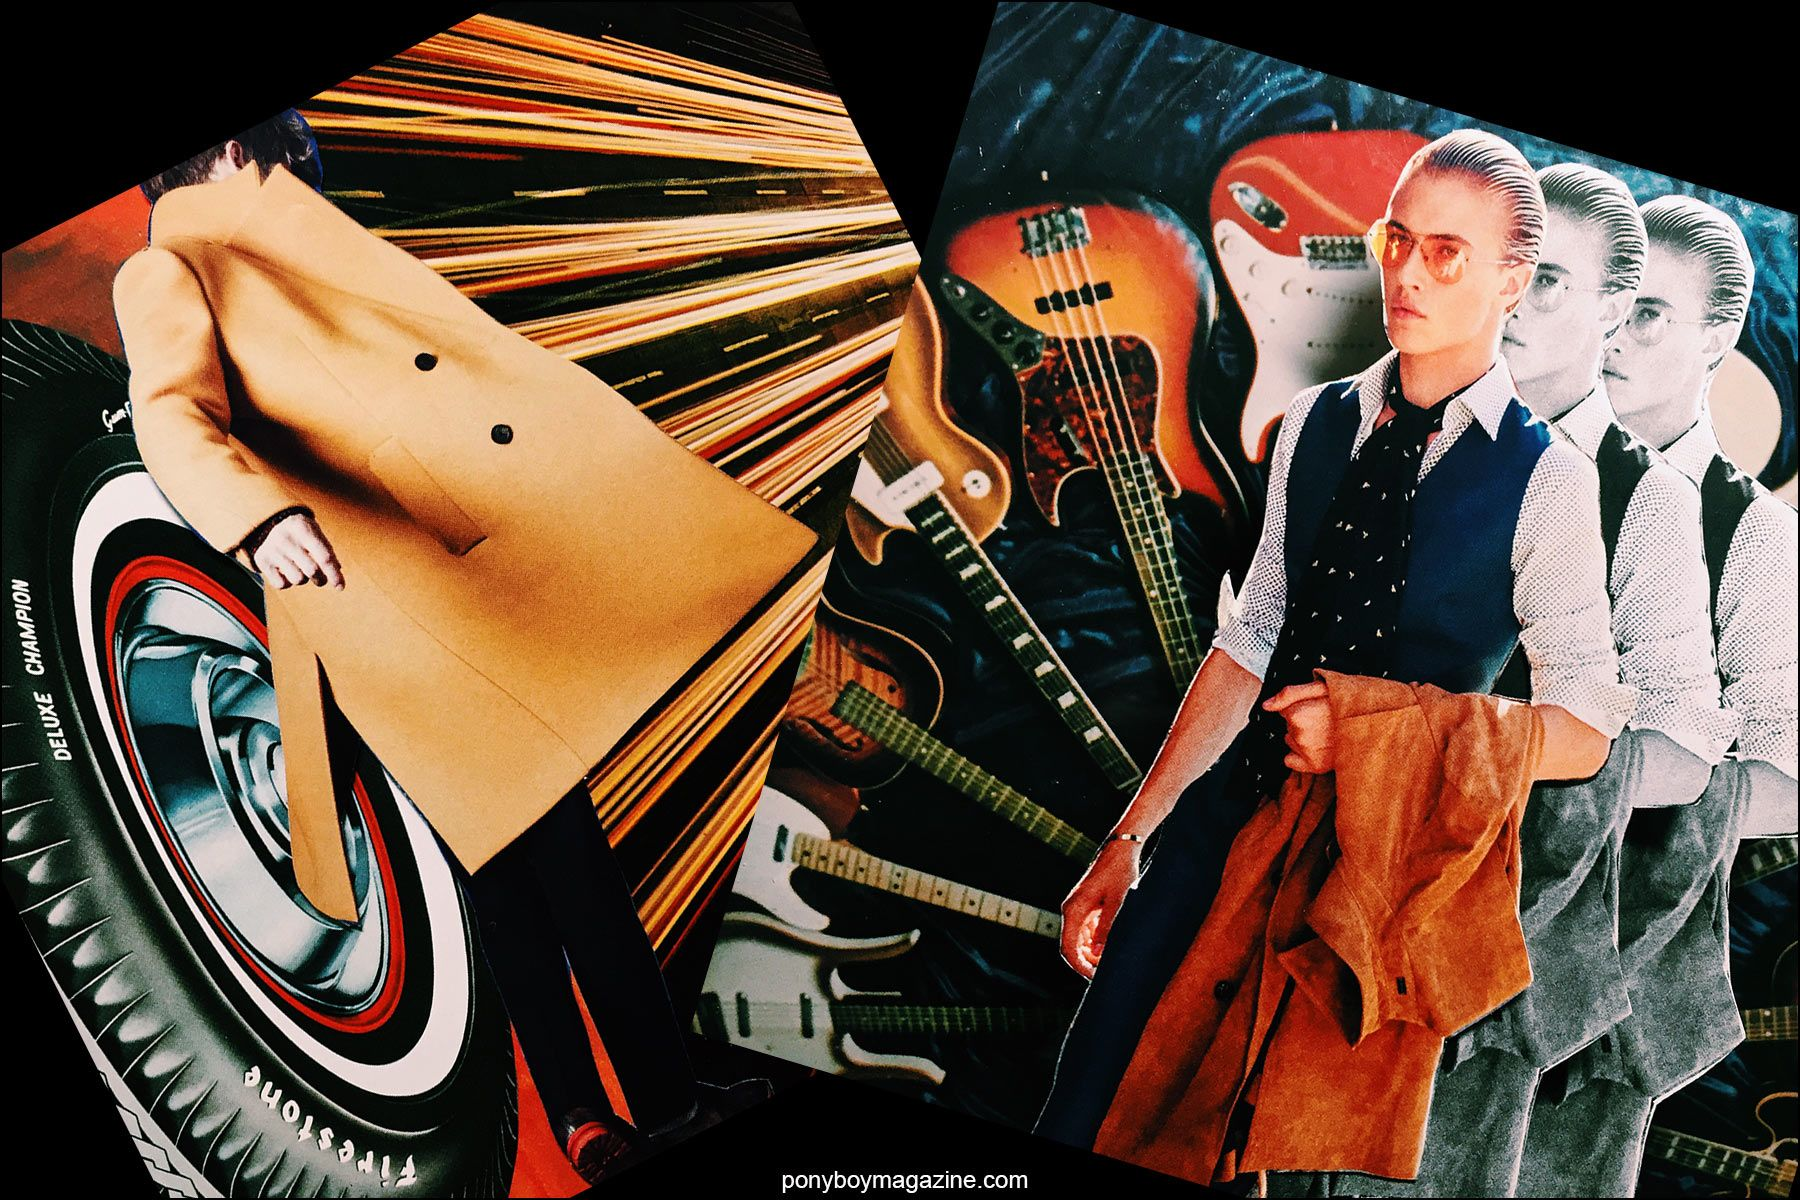 Collage artwork of Berluti and Lucky Blue images by Patrick Keohane for RS Theory. Ponyboy magazine NY.